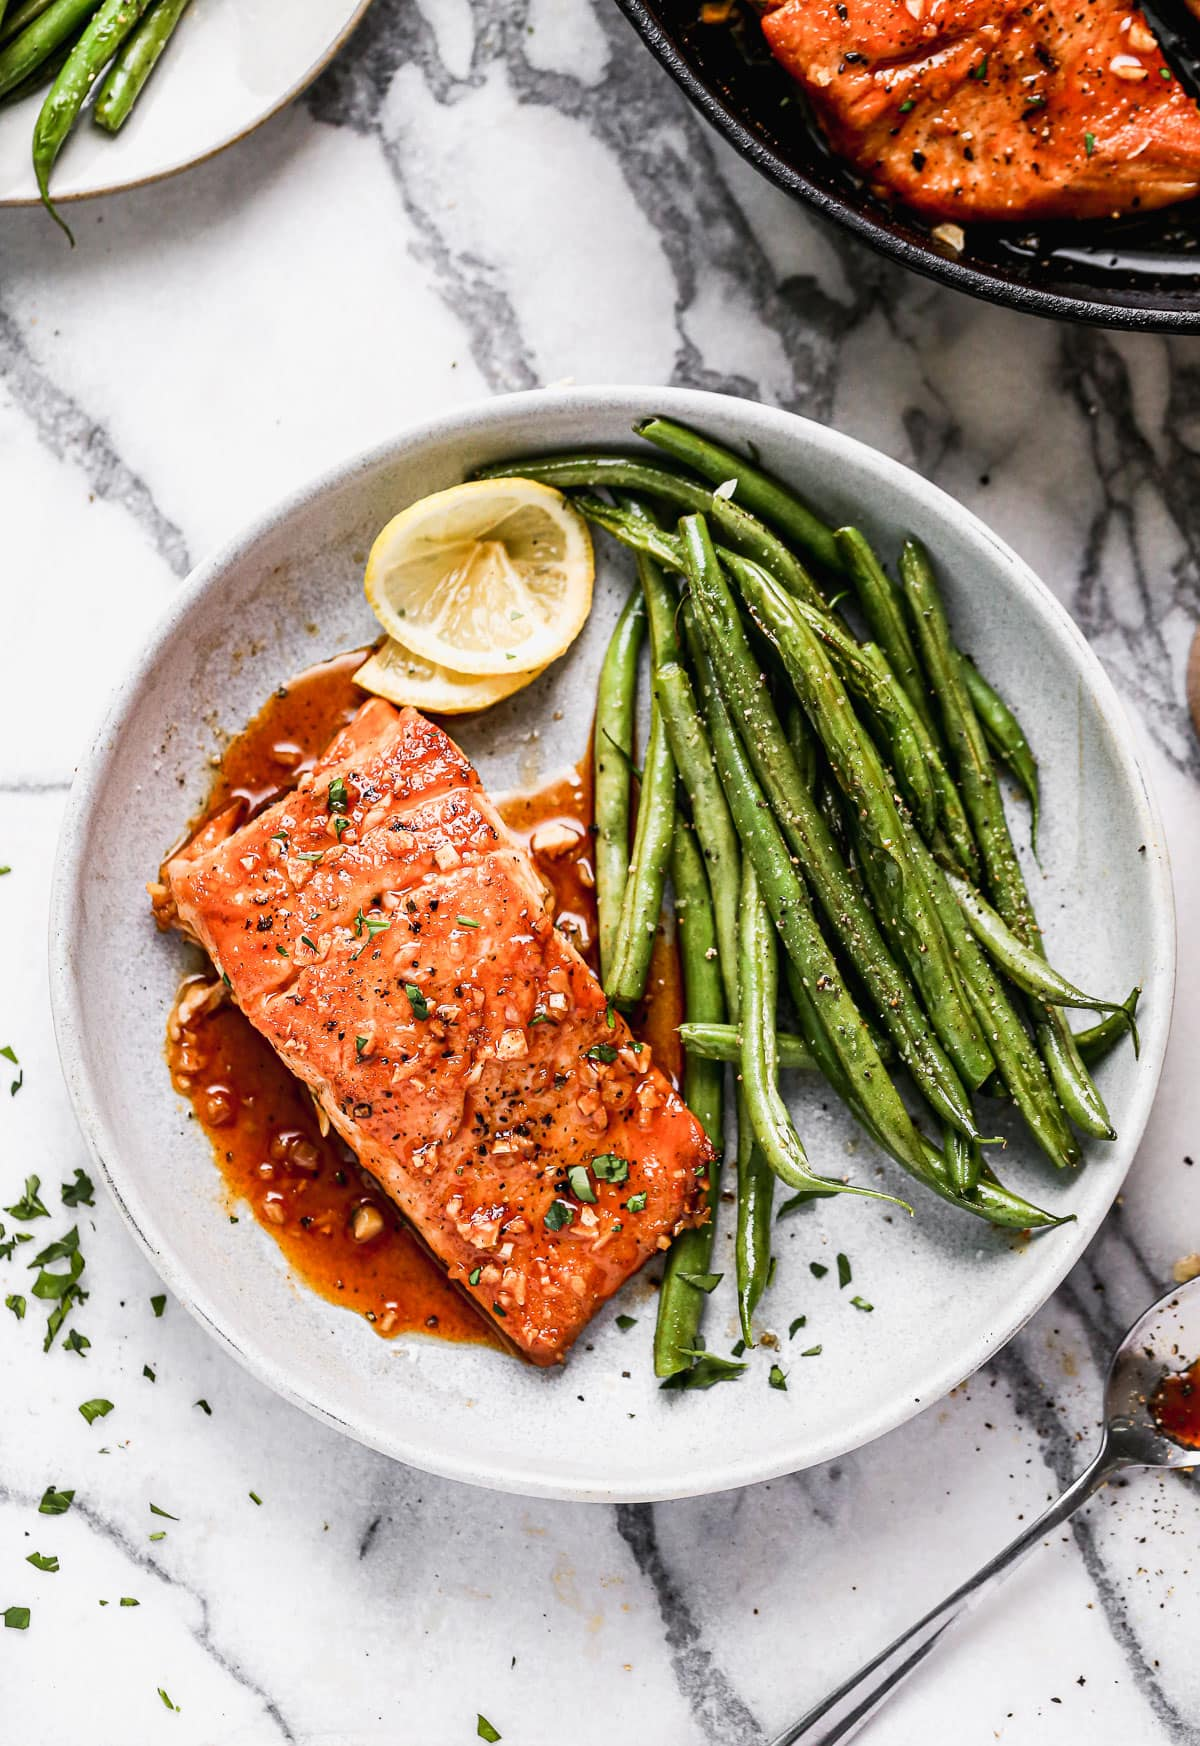 A plate of salmon, green beans, and lemon